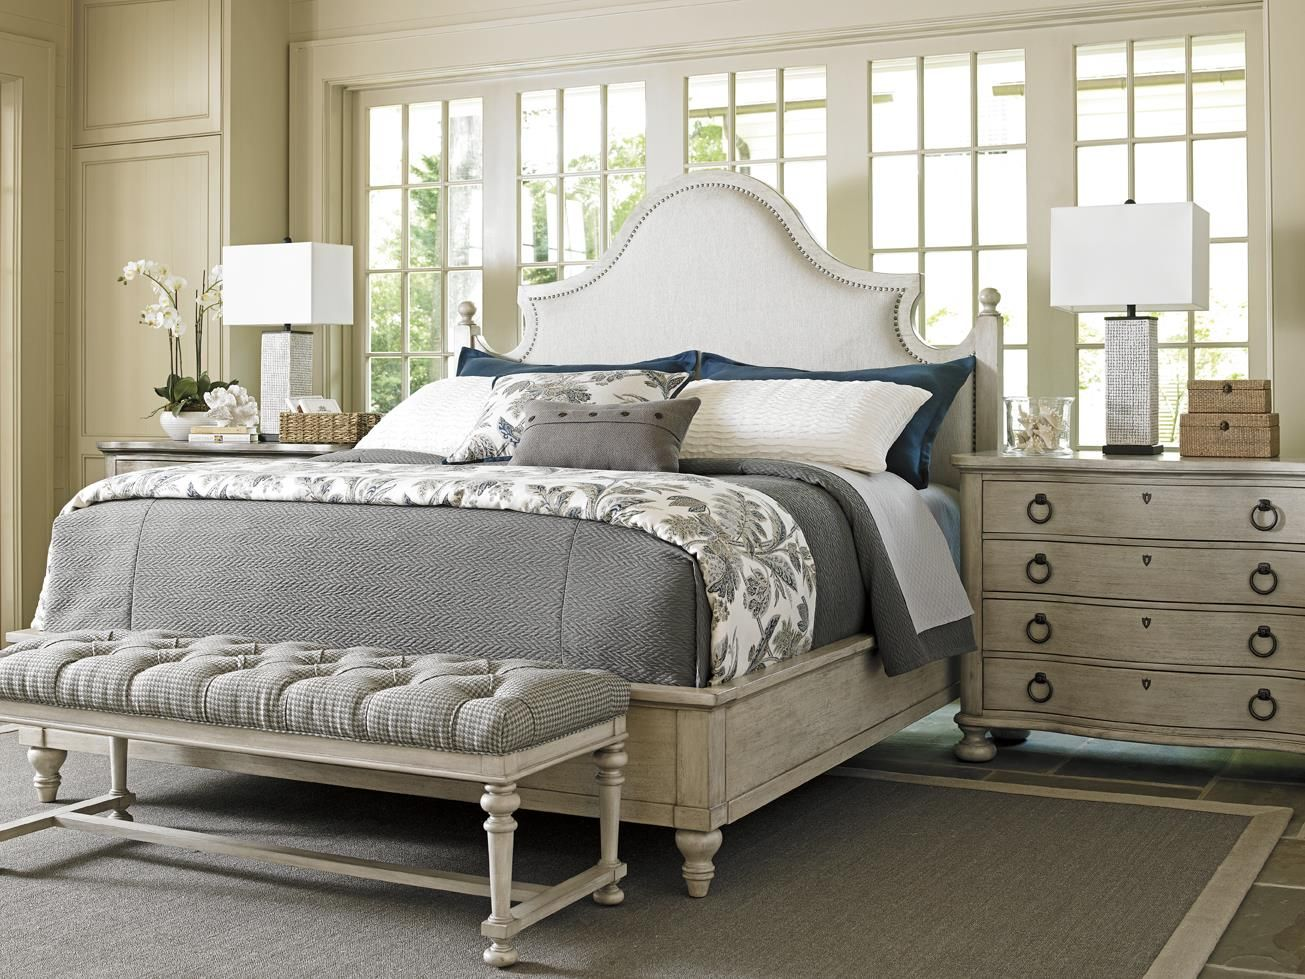 lexington oyster bay queen bedroom group baer s furniture